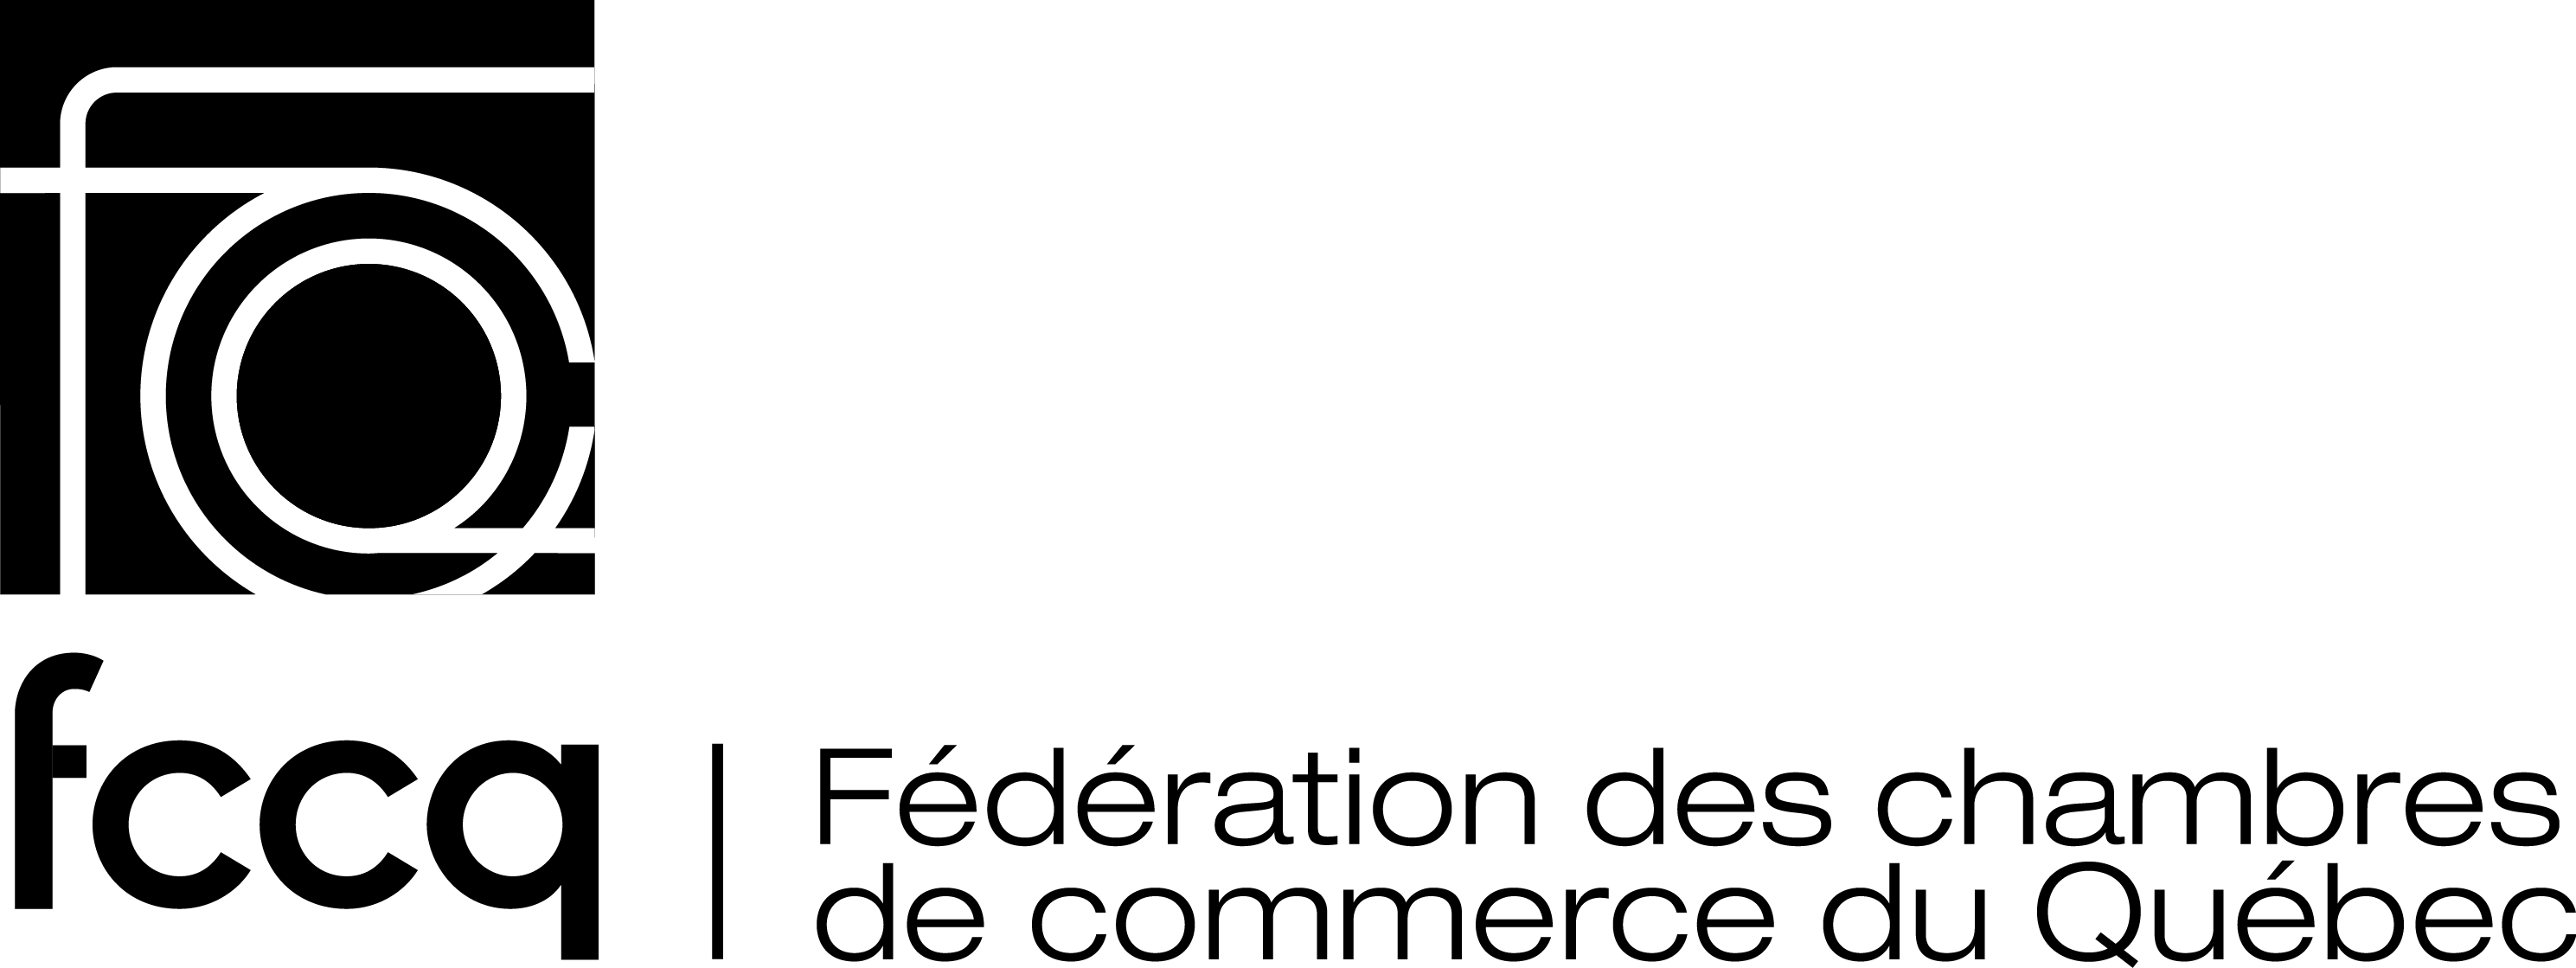 Logo fccq signature noir rive sud express for Chambre de commerce rive sud